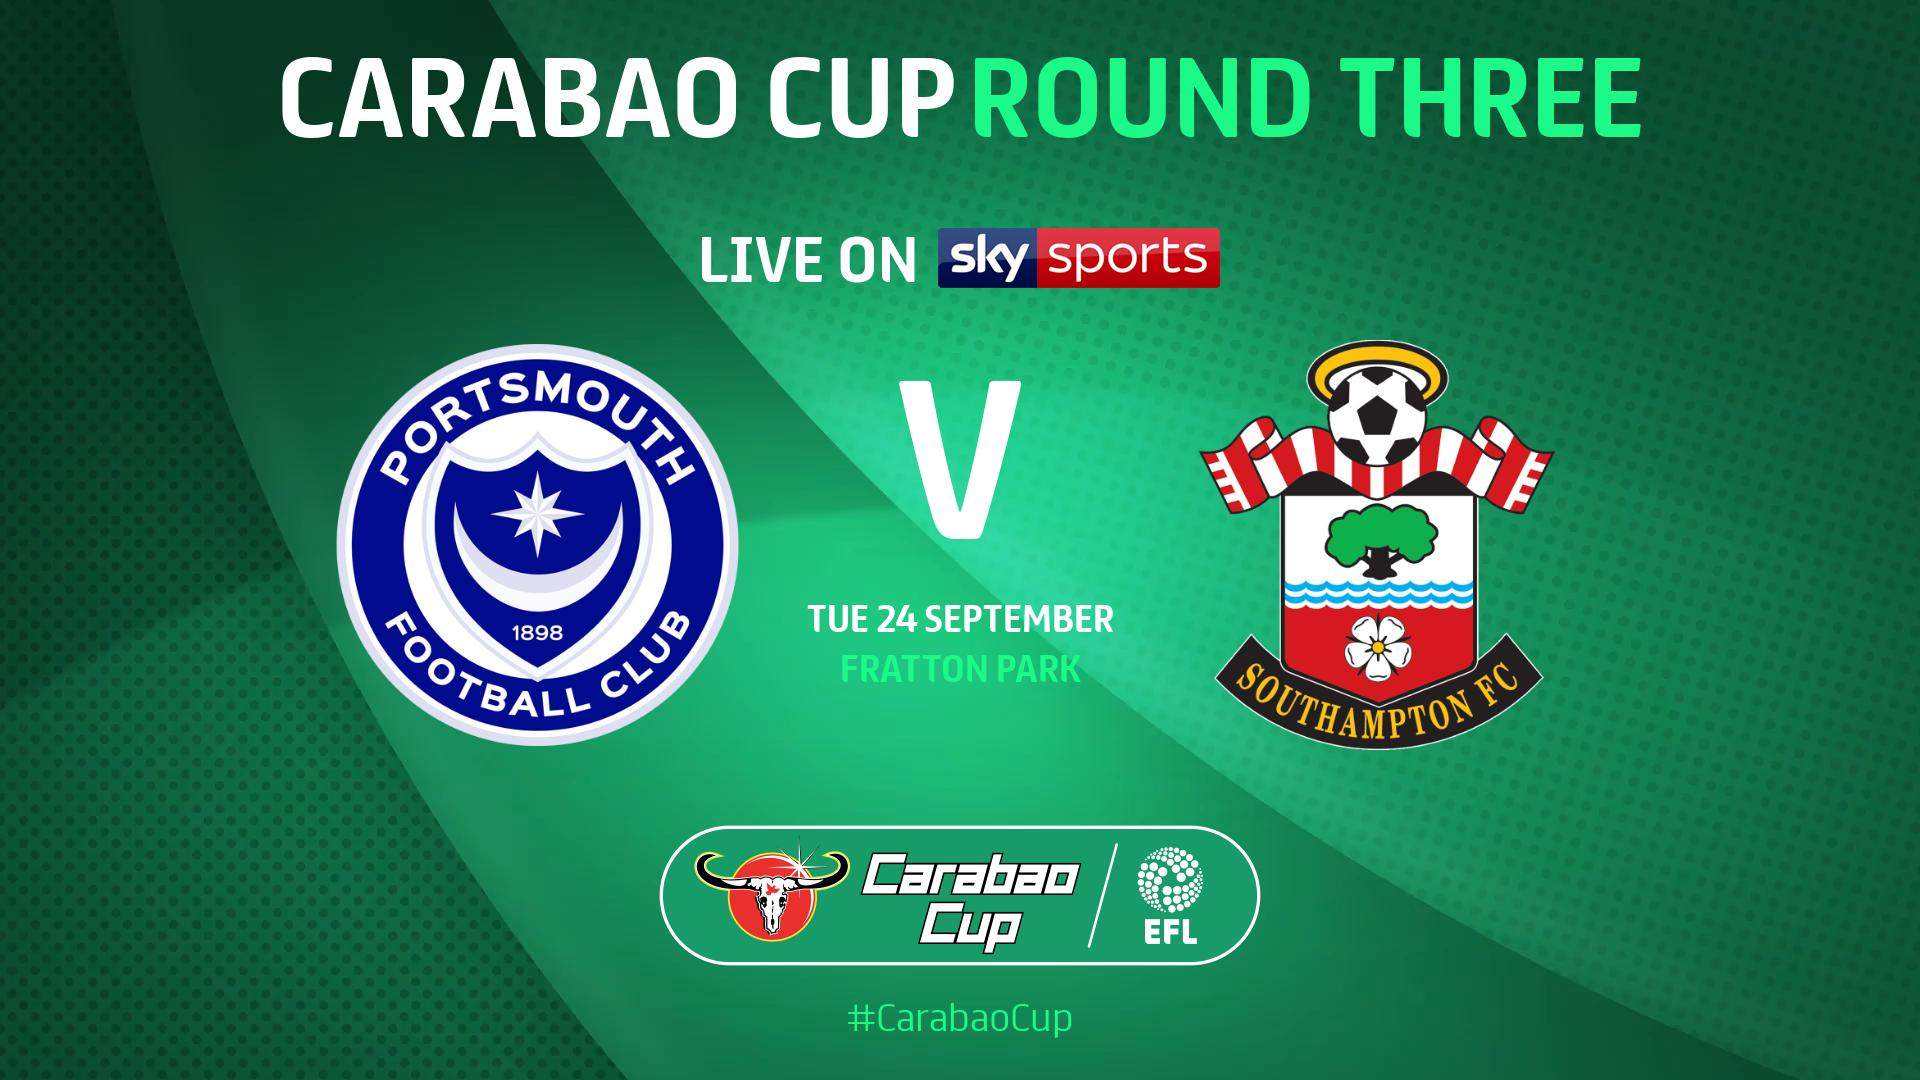 Sky Sports Announce Carabao Cup 2019/20 Third Round Ties